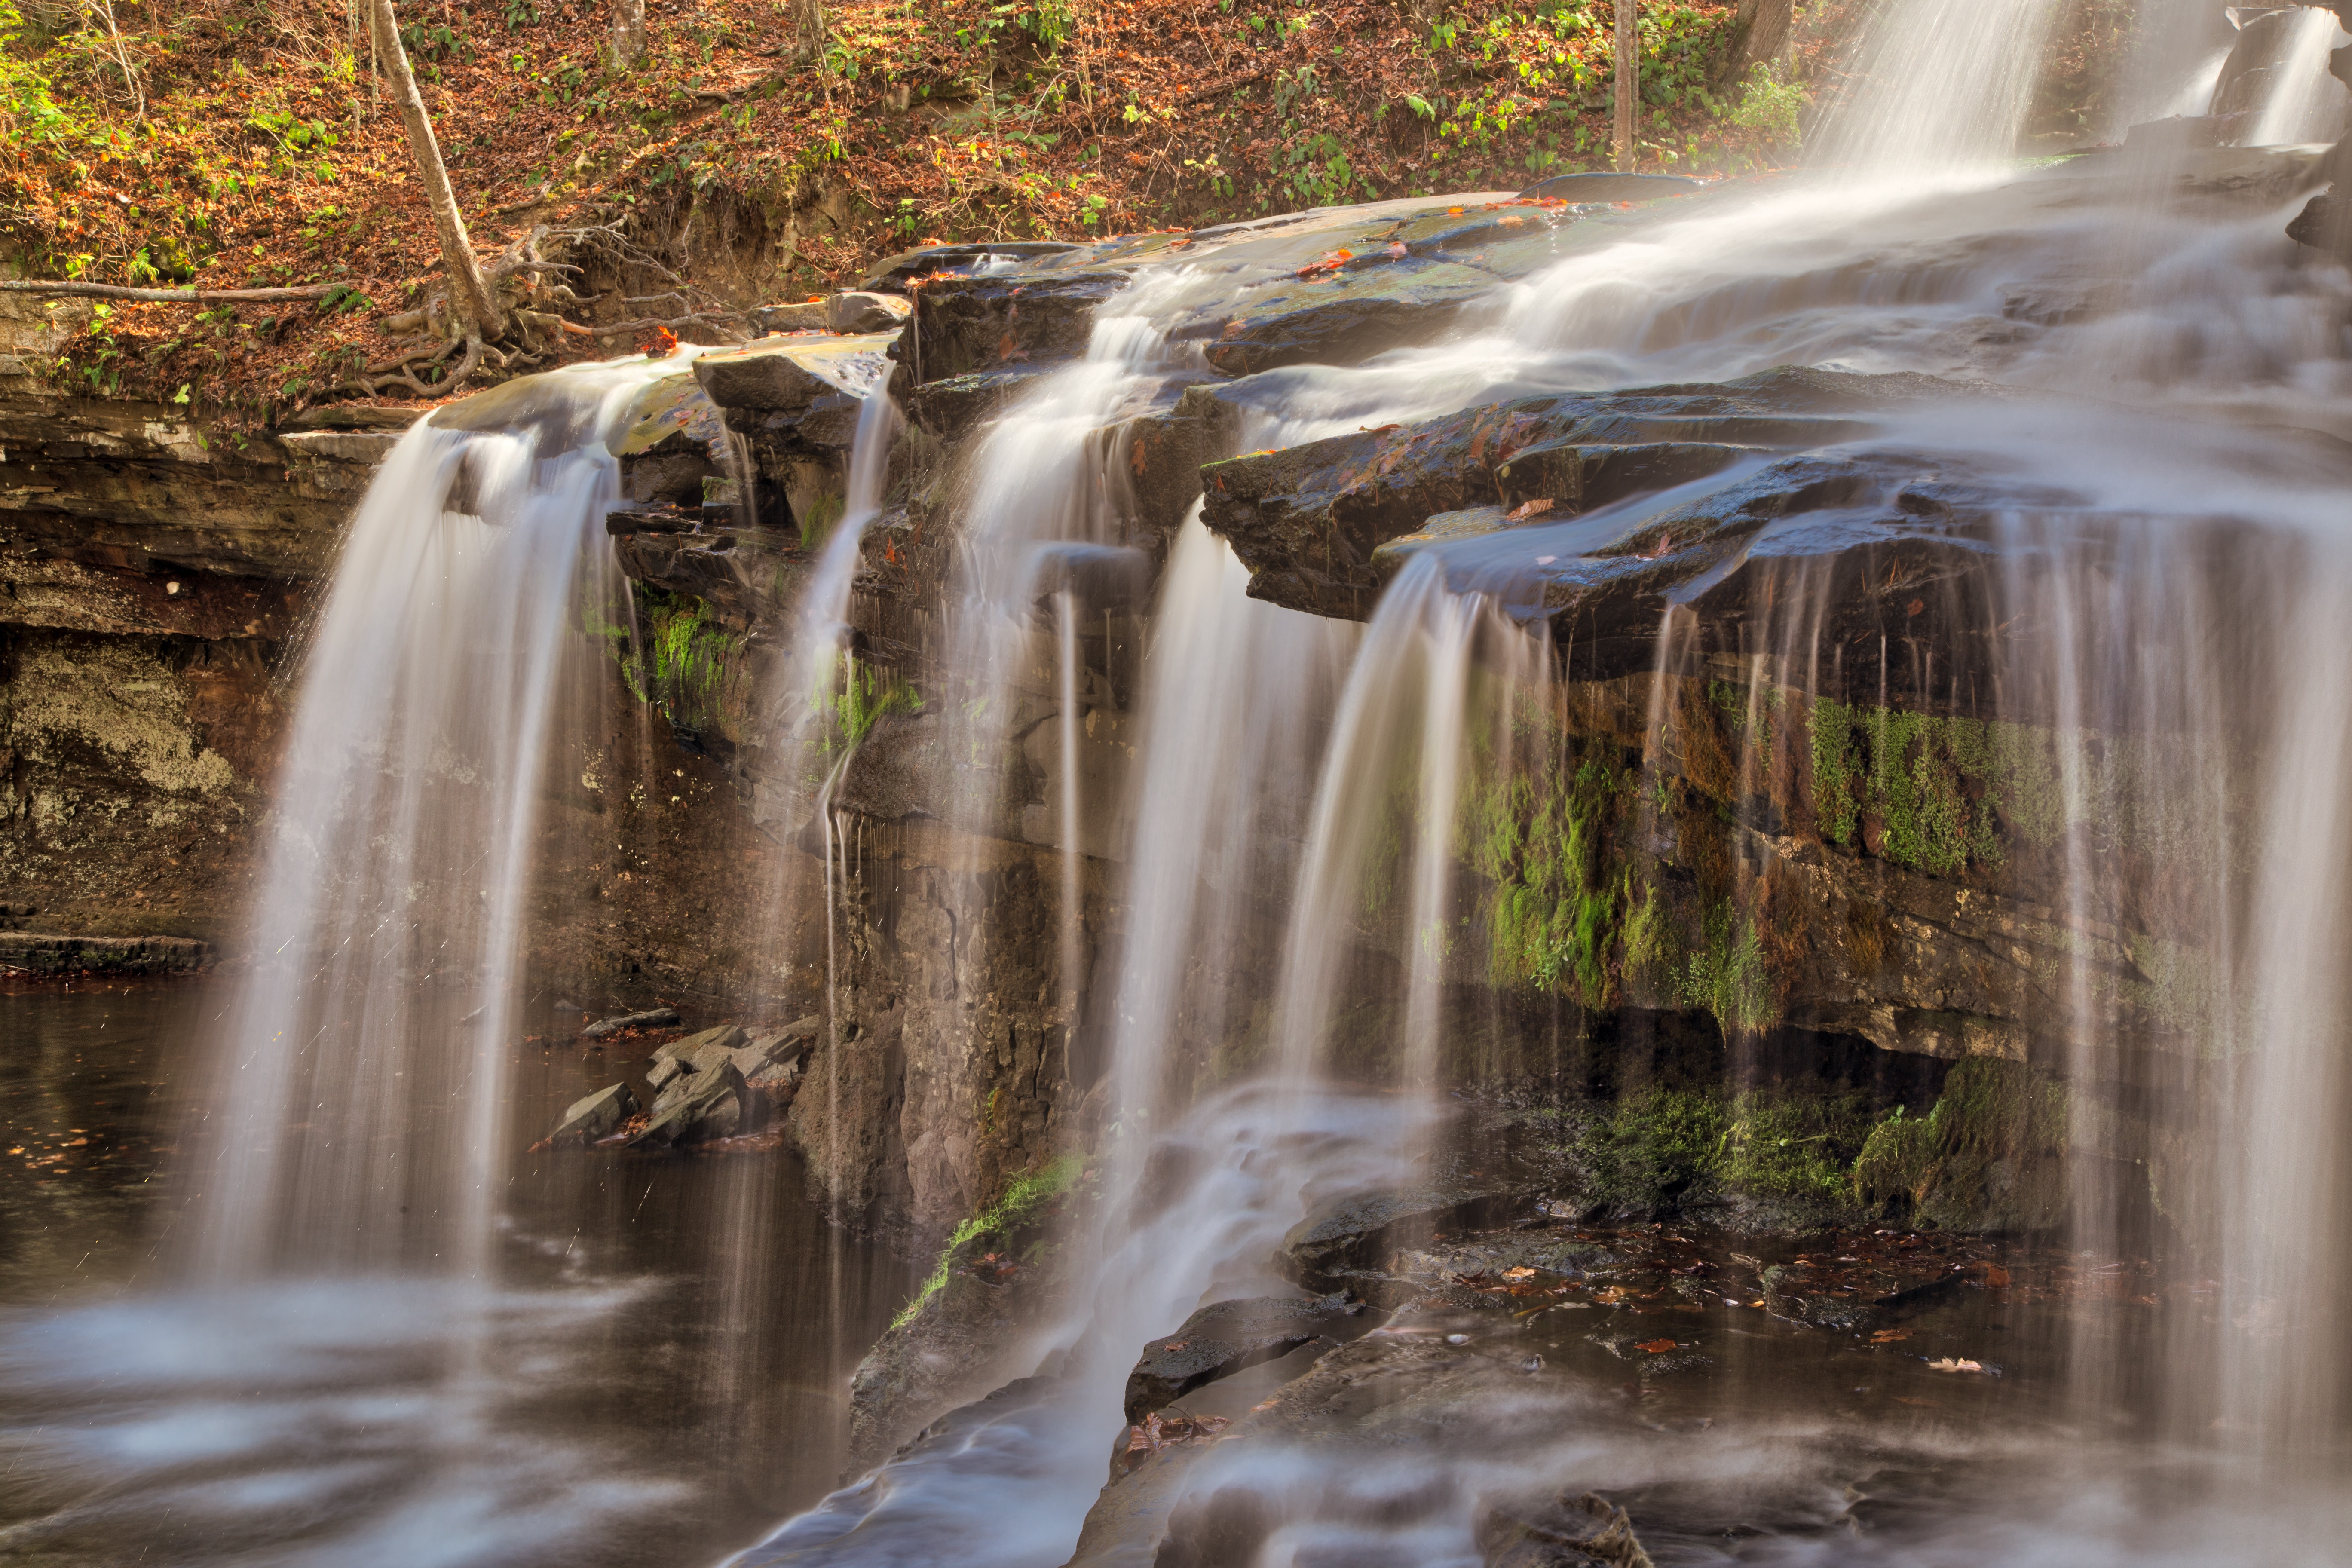 Free download high resolution image - free image free photo free stock image public domain picture -Brush Creek Falls